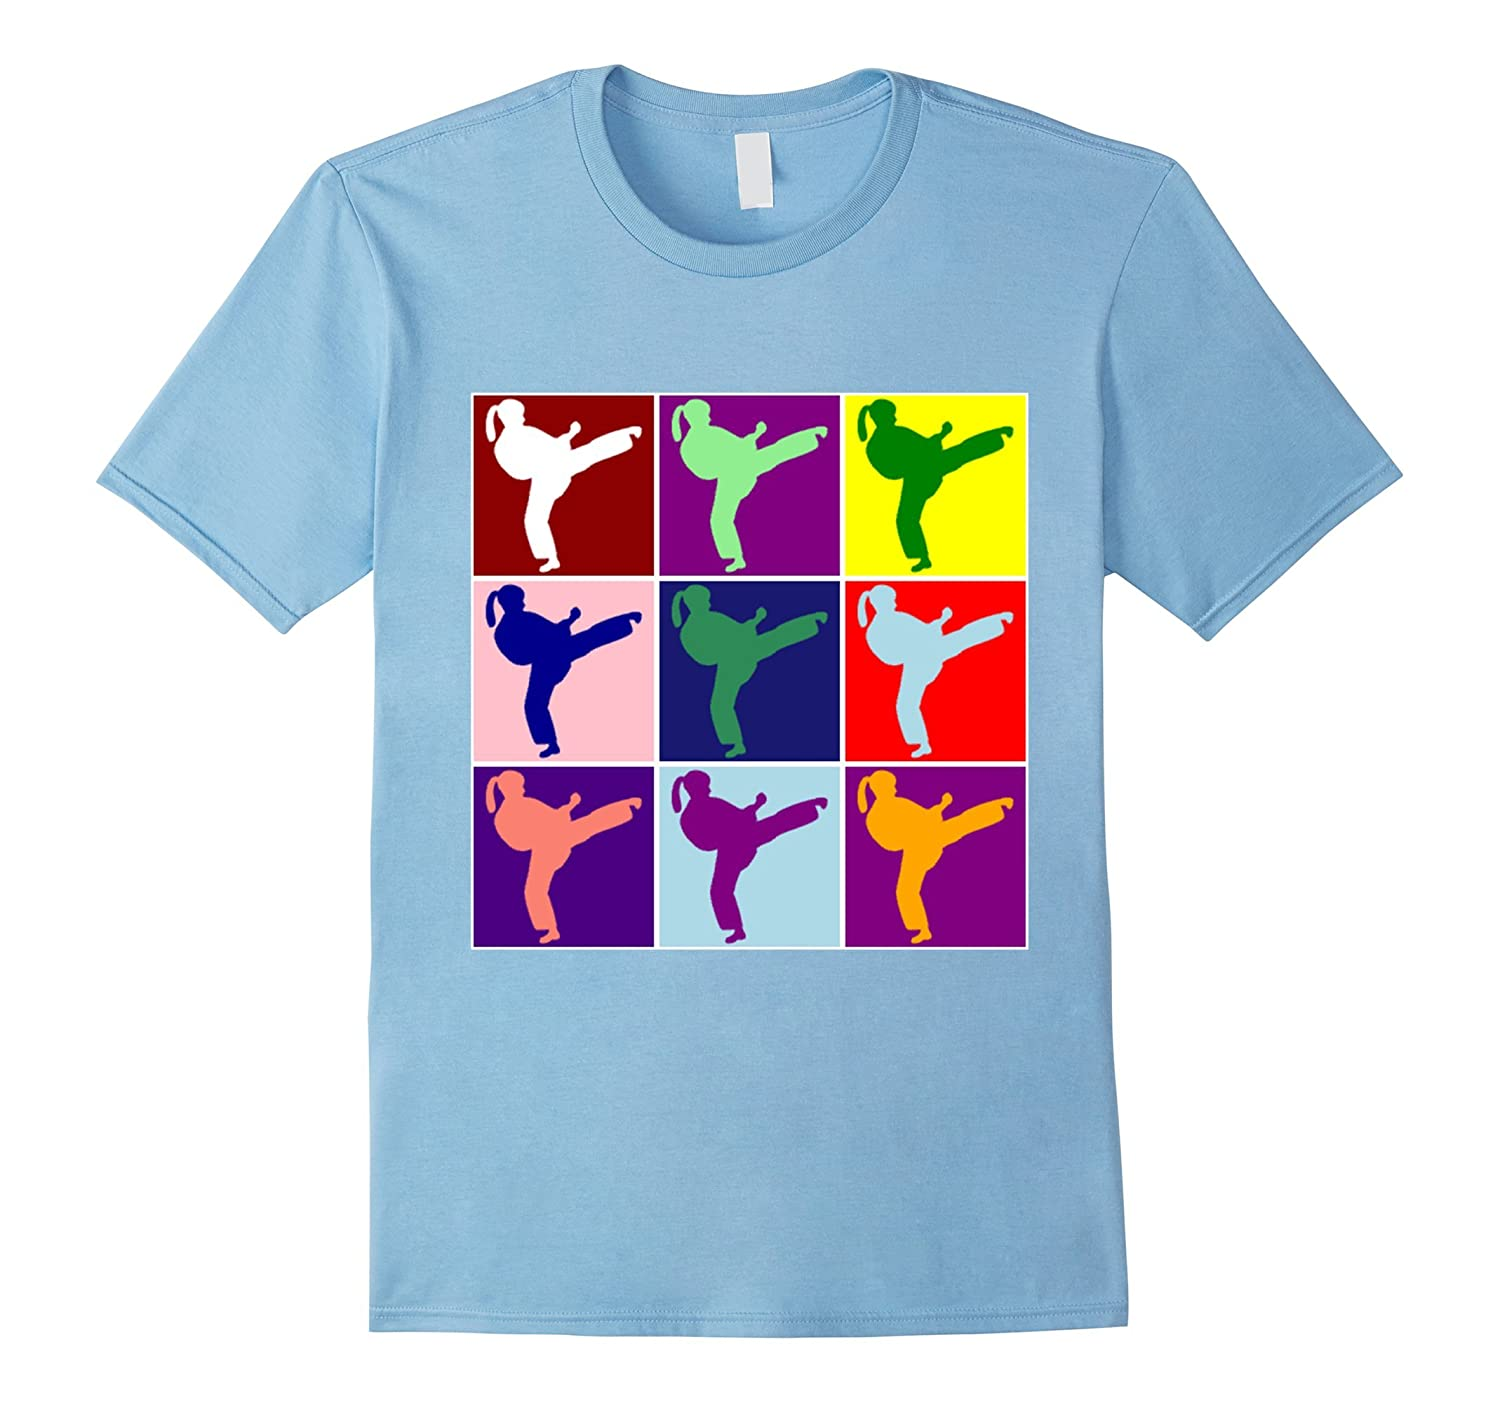 Cute Colorful Girl Karate Judo Martial Arts Pop Art T-shirt-TD